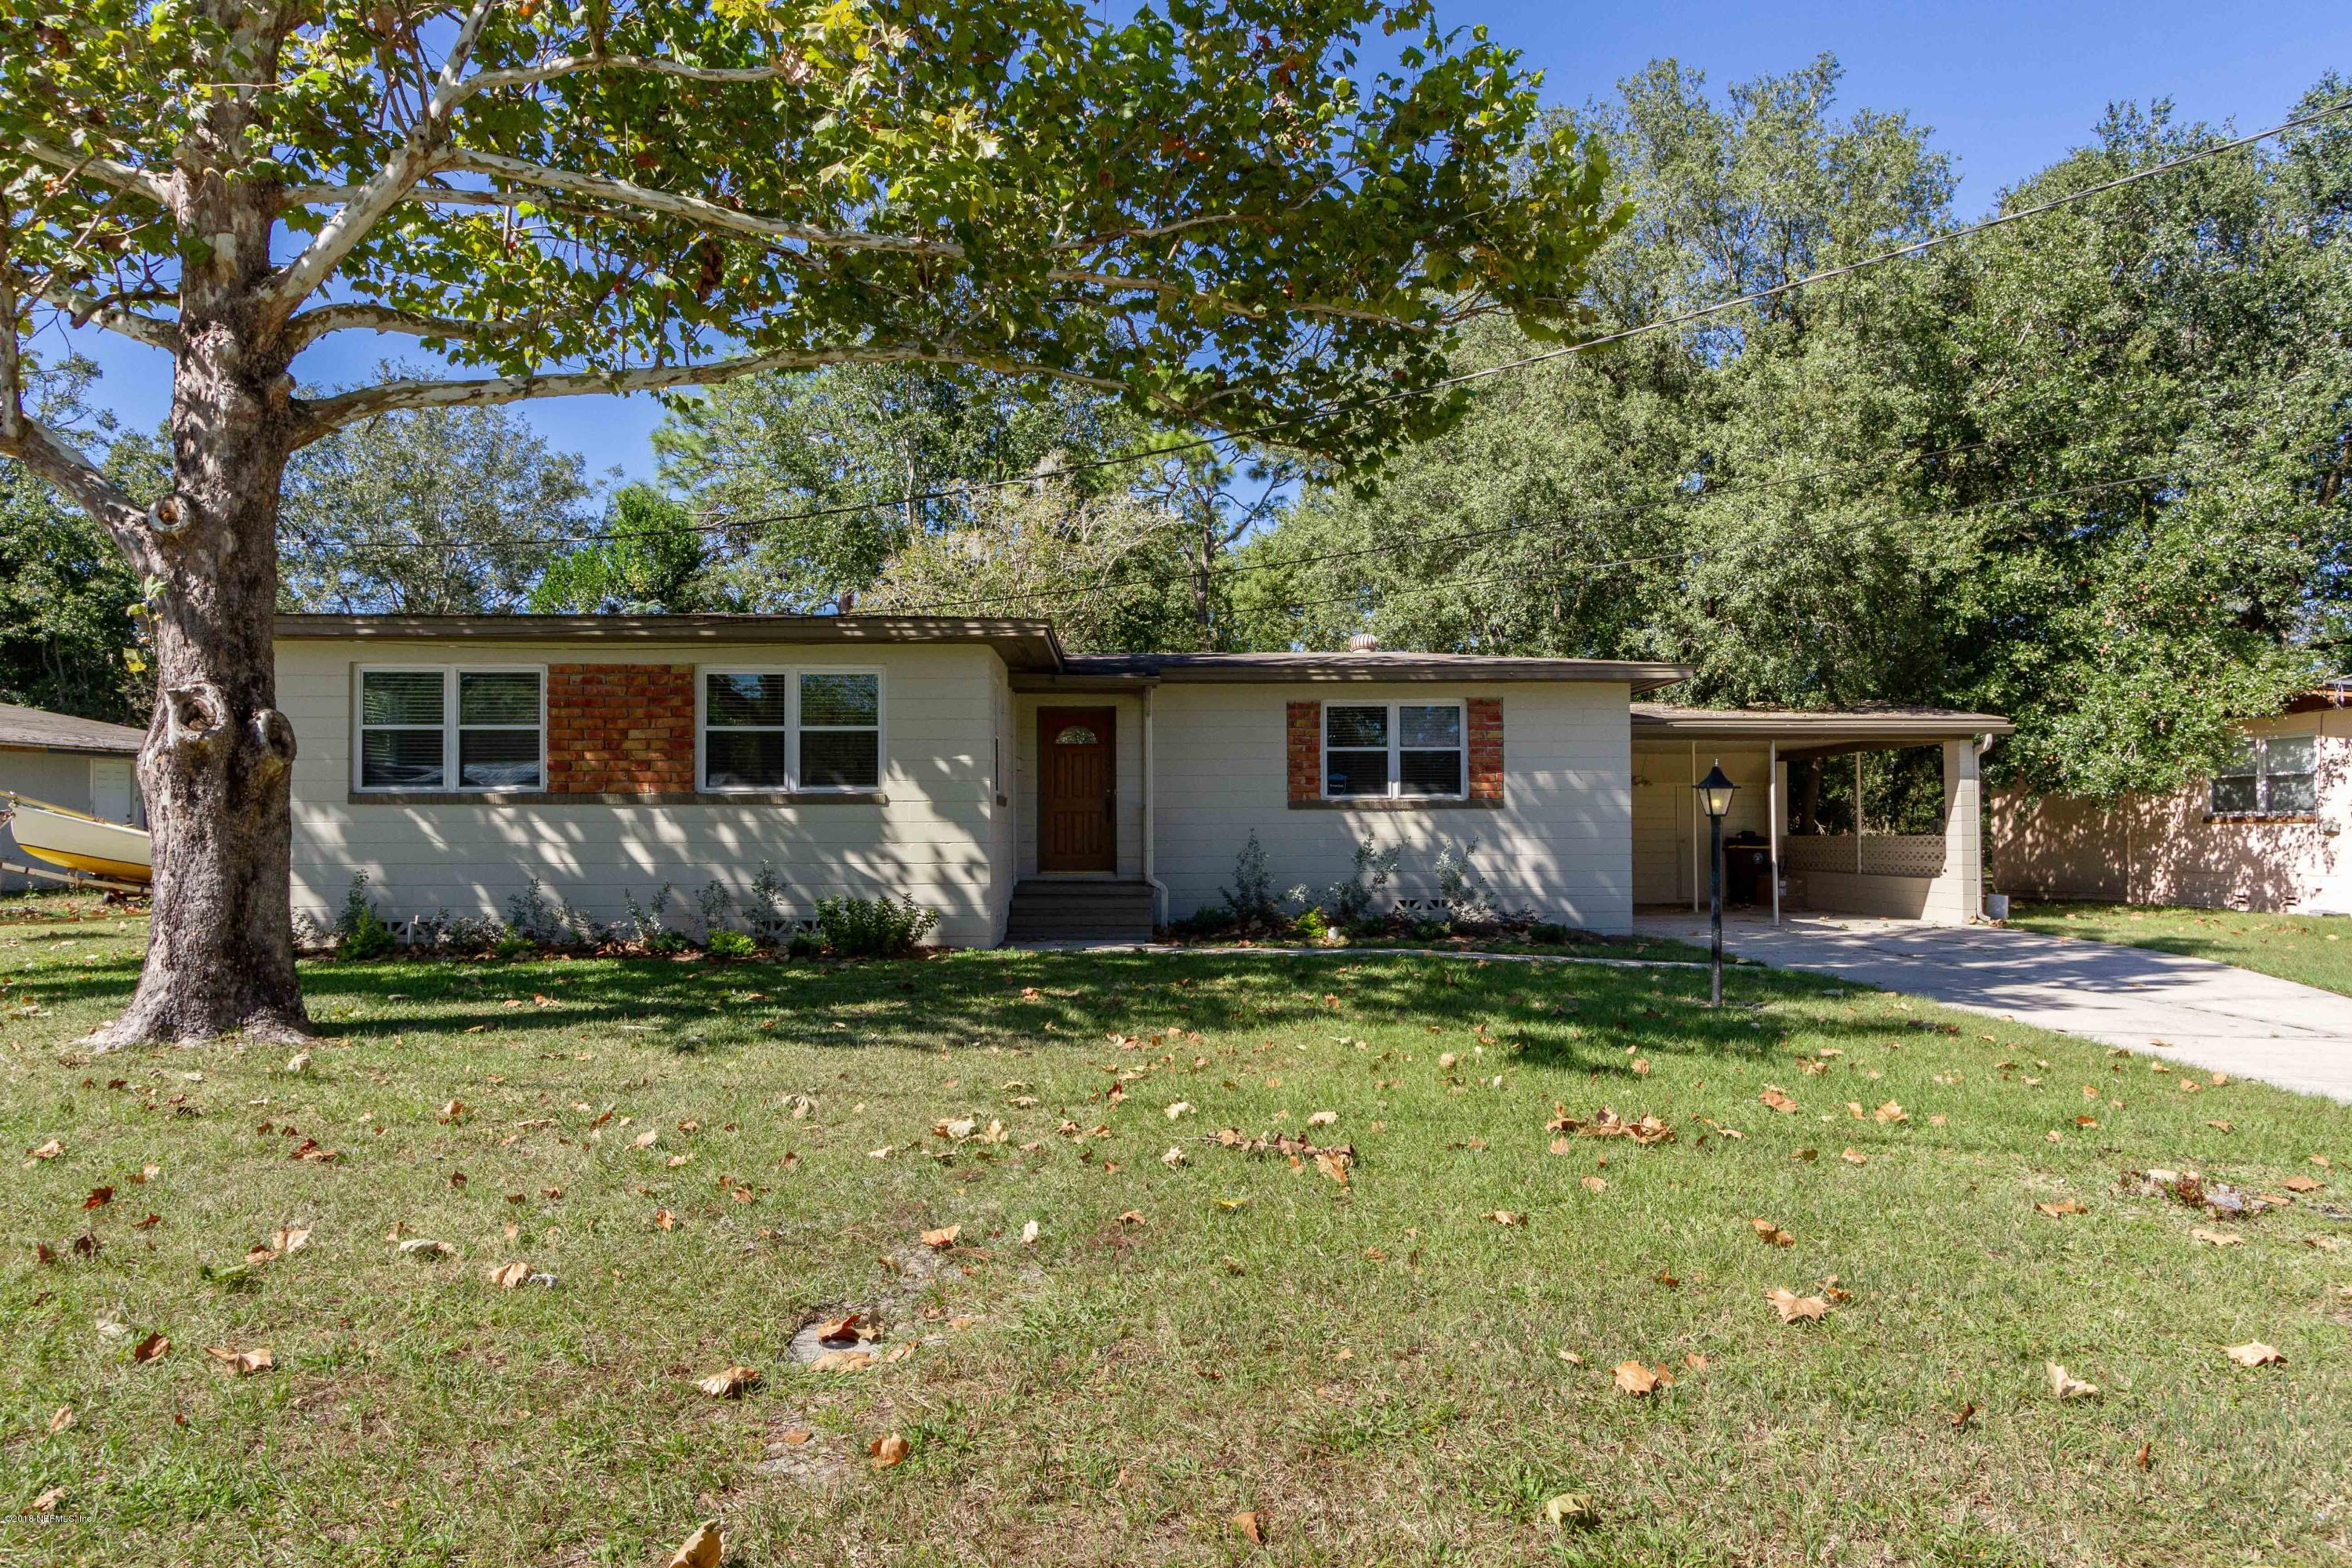 7234 PINEVILLE, JACKSONVILLE, FLORIDA 32244, 3 Bedrooms Bedrooms, ,1 BathroomBathrooms,Residential - single family,For sale,PINEVILLE,964727